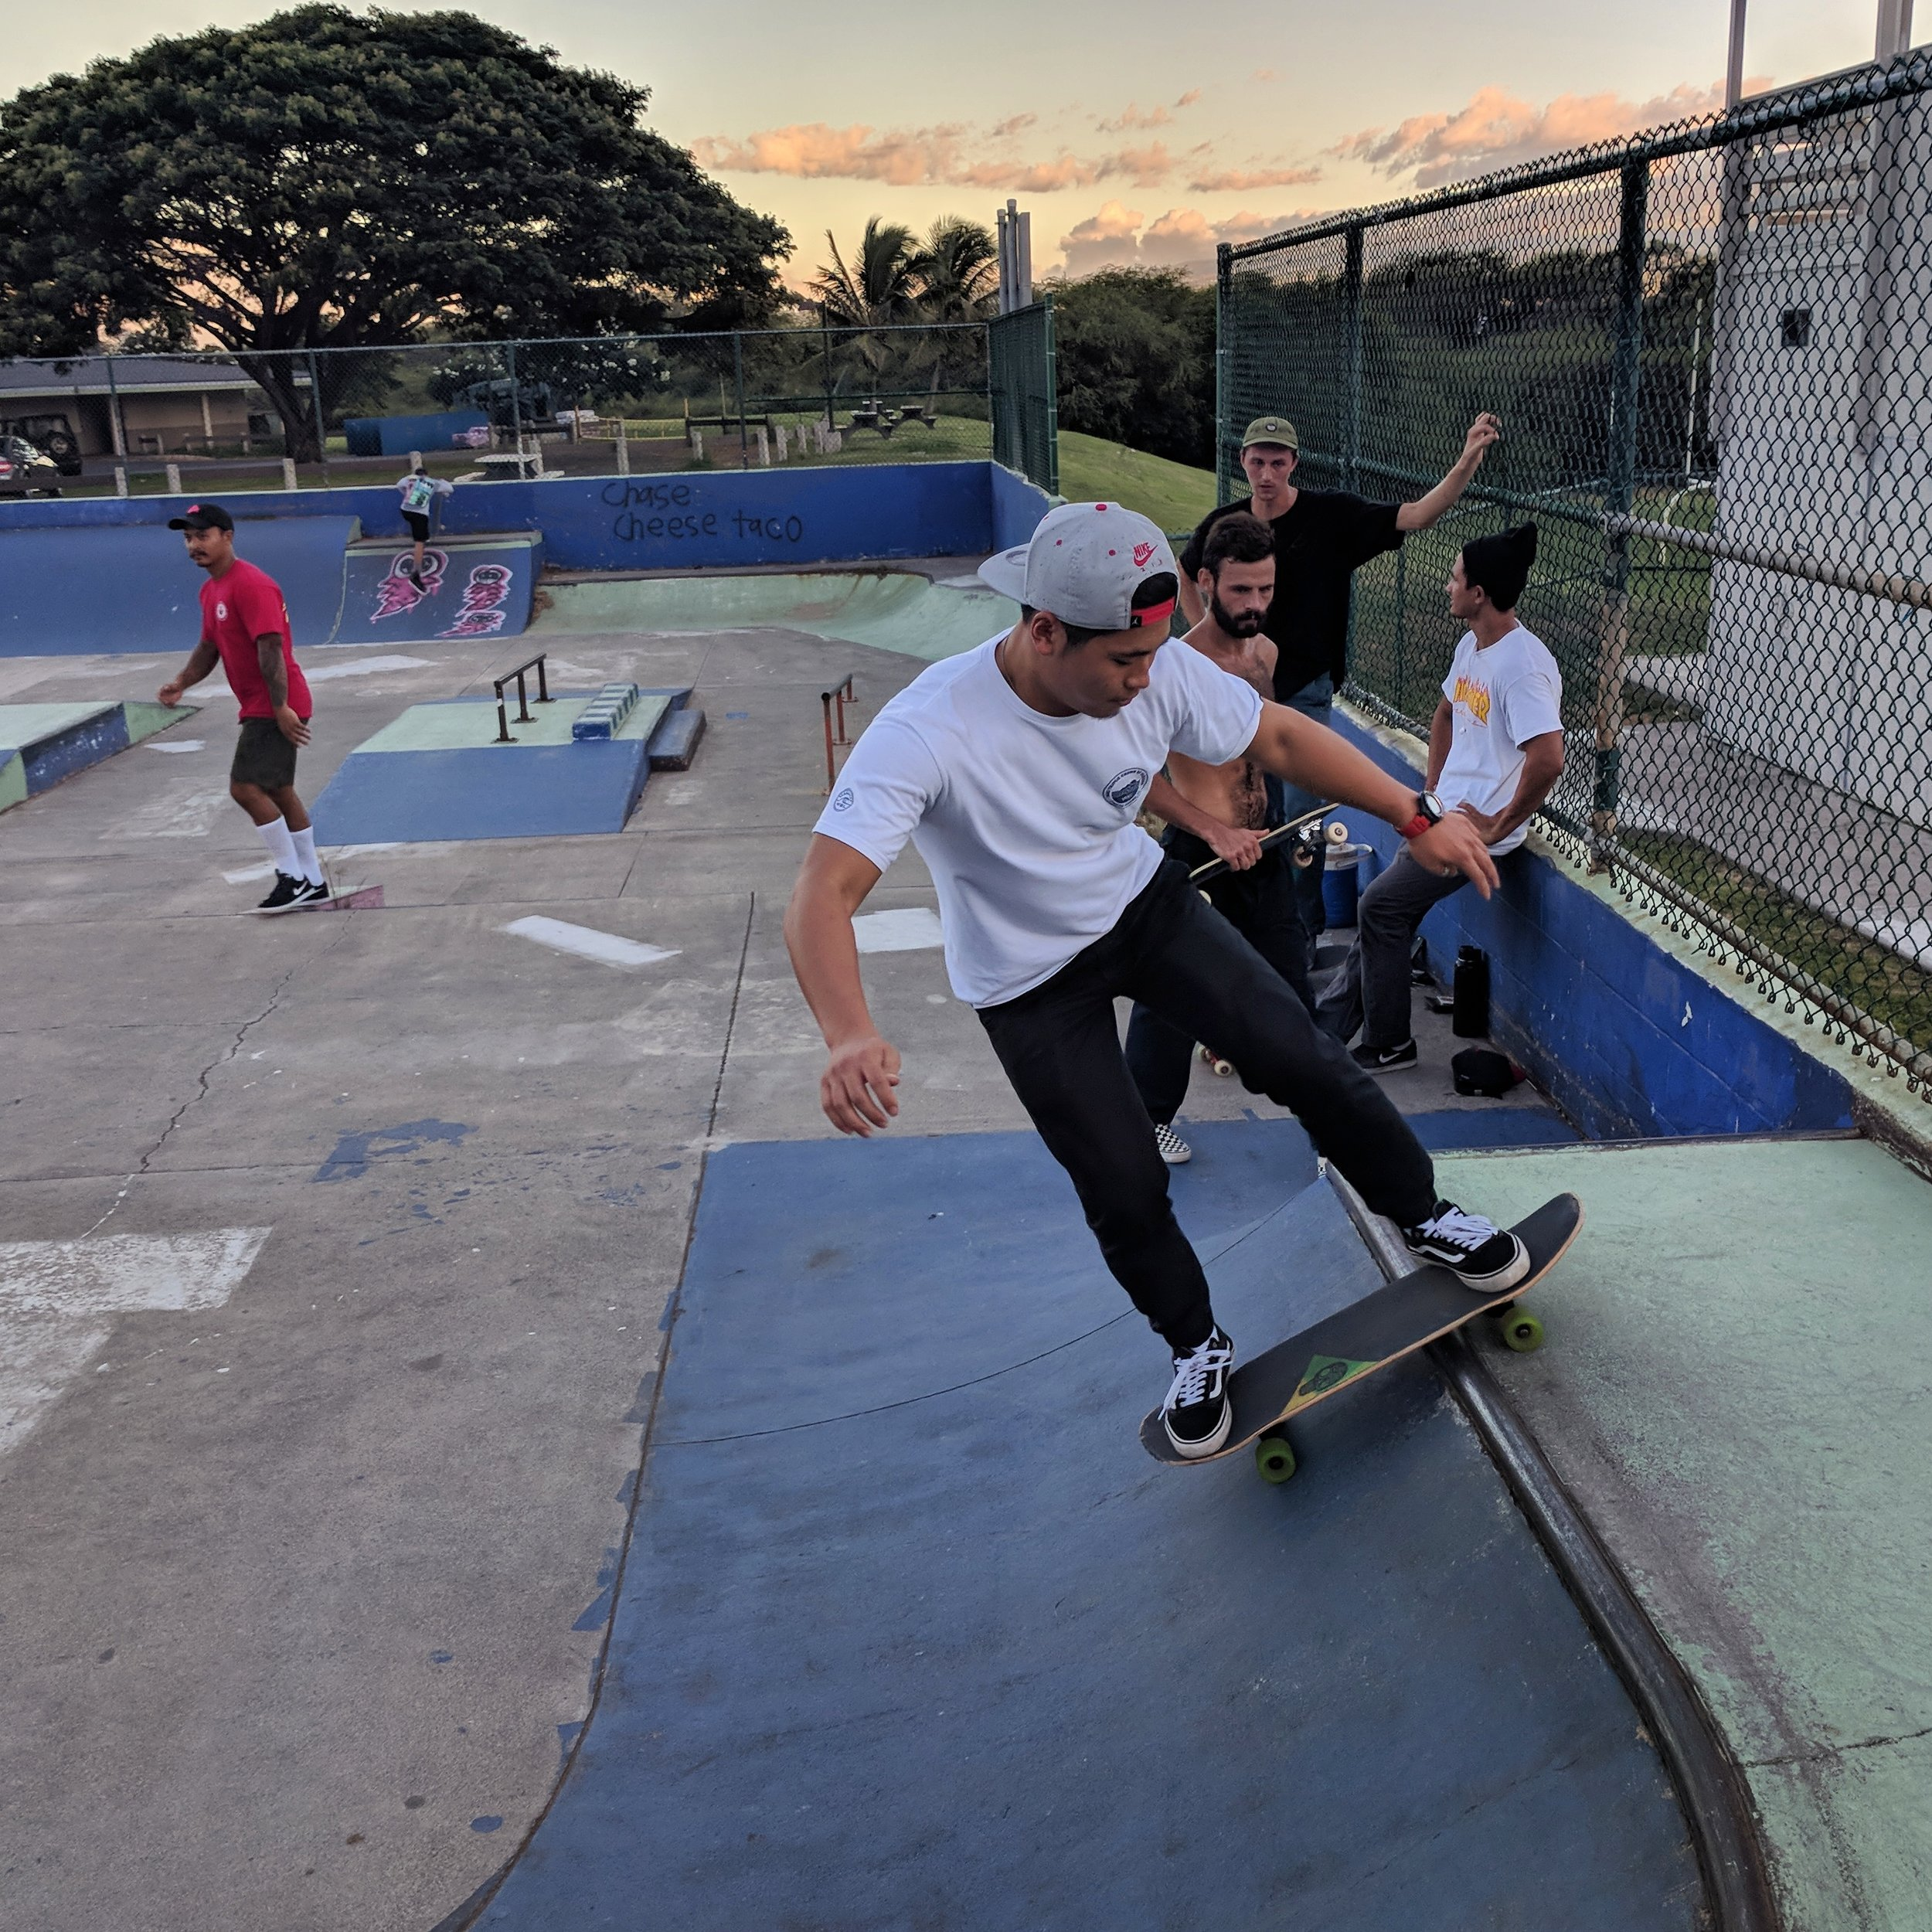 Kai learning skateboard tricks at Keo last Wednesday. Kai is from Japan,recently received Jesus, and is learning what it means to #LiveOneLove from Sam P weekly.